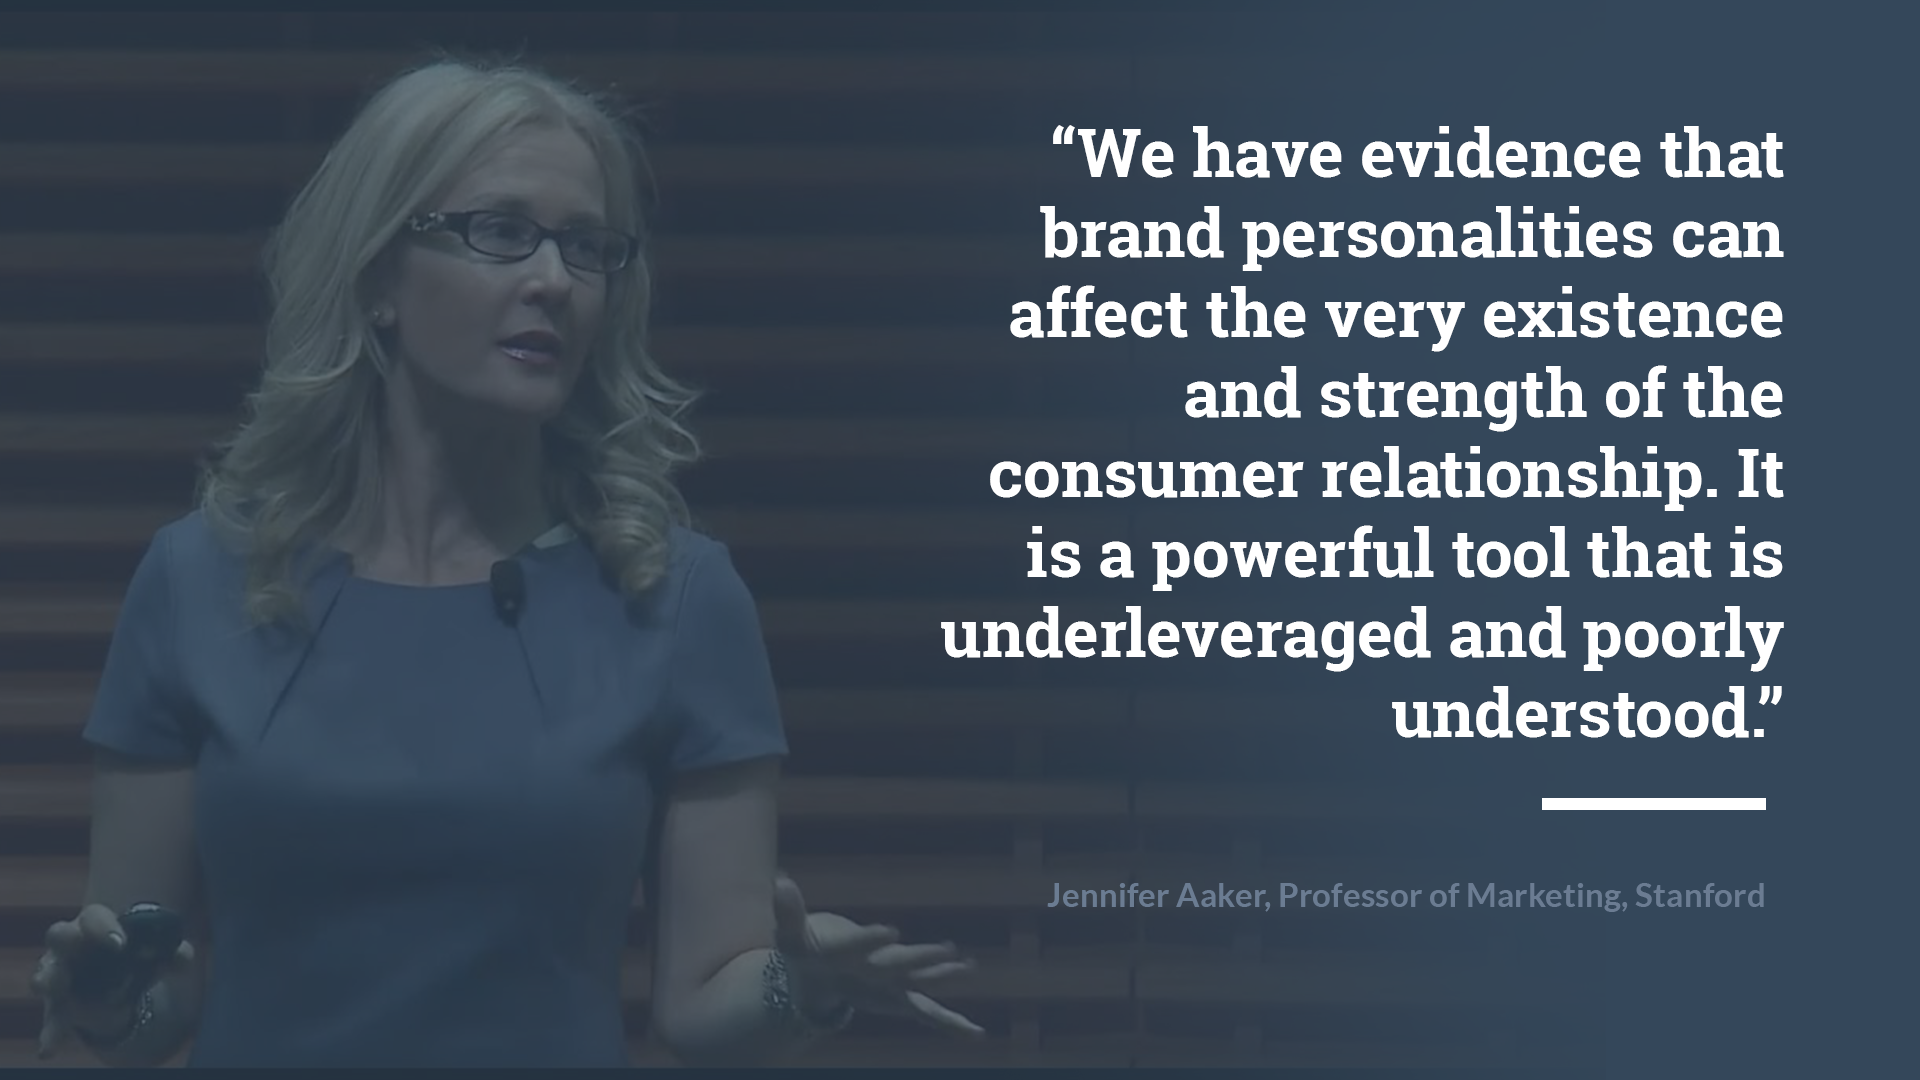 Quote by jennifer aaker: 'we have evidence that brand personalities can affect the very existence and strength of the consumer relationship. it is a powerful tool that is underleveraged and poorly understood'